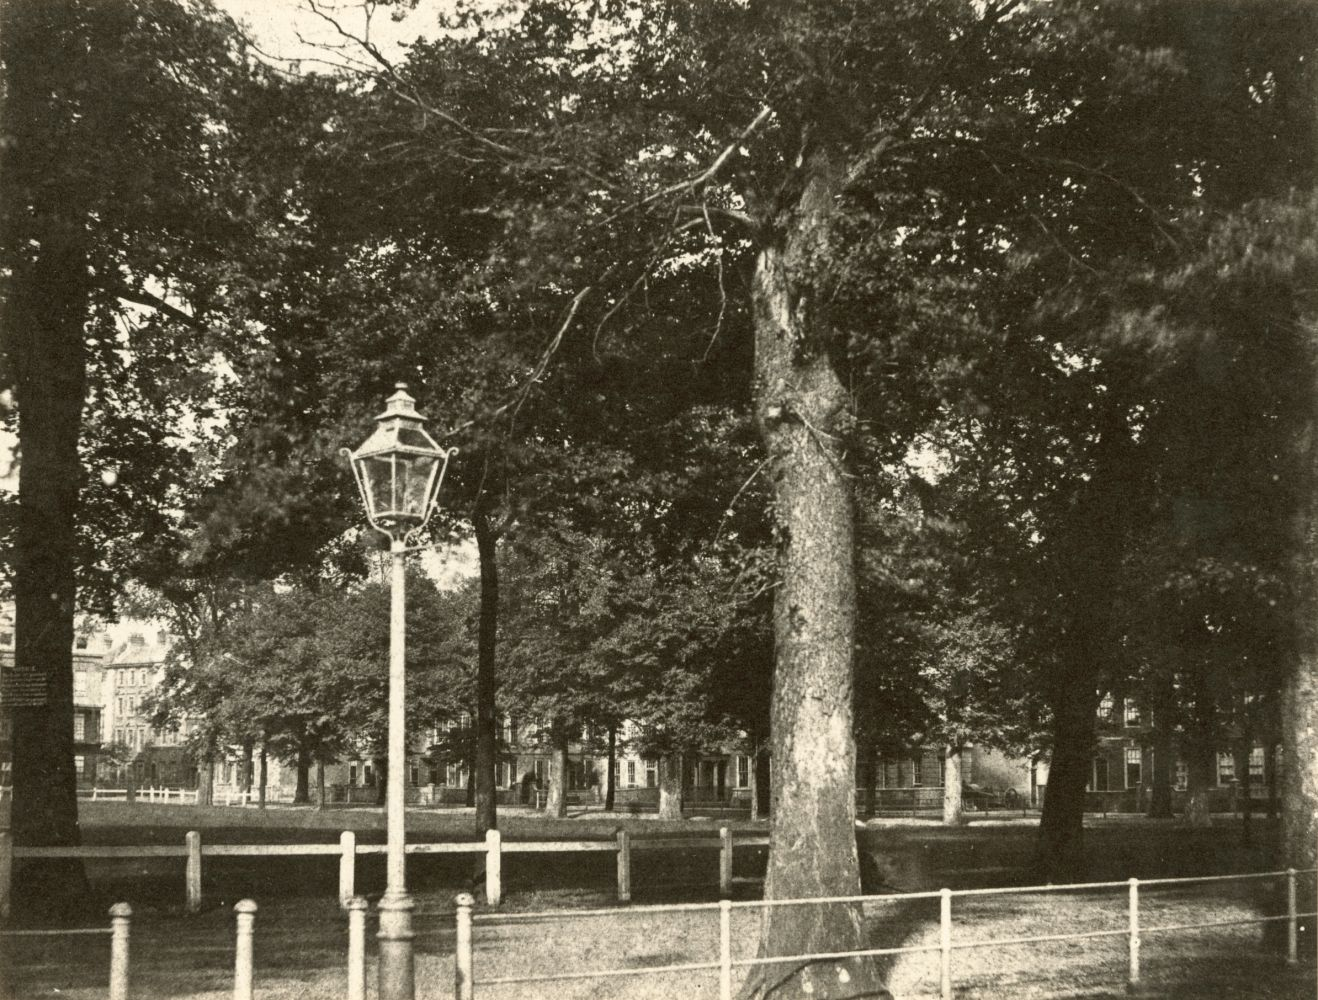 """Hugh OWEN (English, 1808-1897) Queen Square, Bristol Albumen print, 1860s-1870s, from a paper negative, before 1855 15.4 x 20.3 cm mounted on 26.0 x 28.3 cm album sheet Numbered """"56"""" in pencil on mount"""